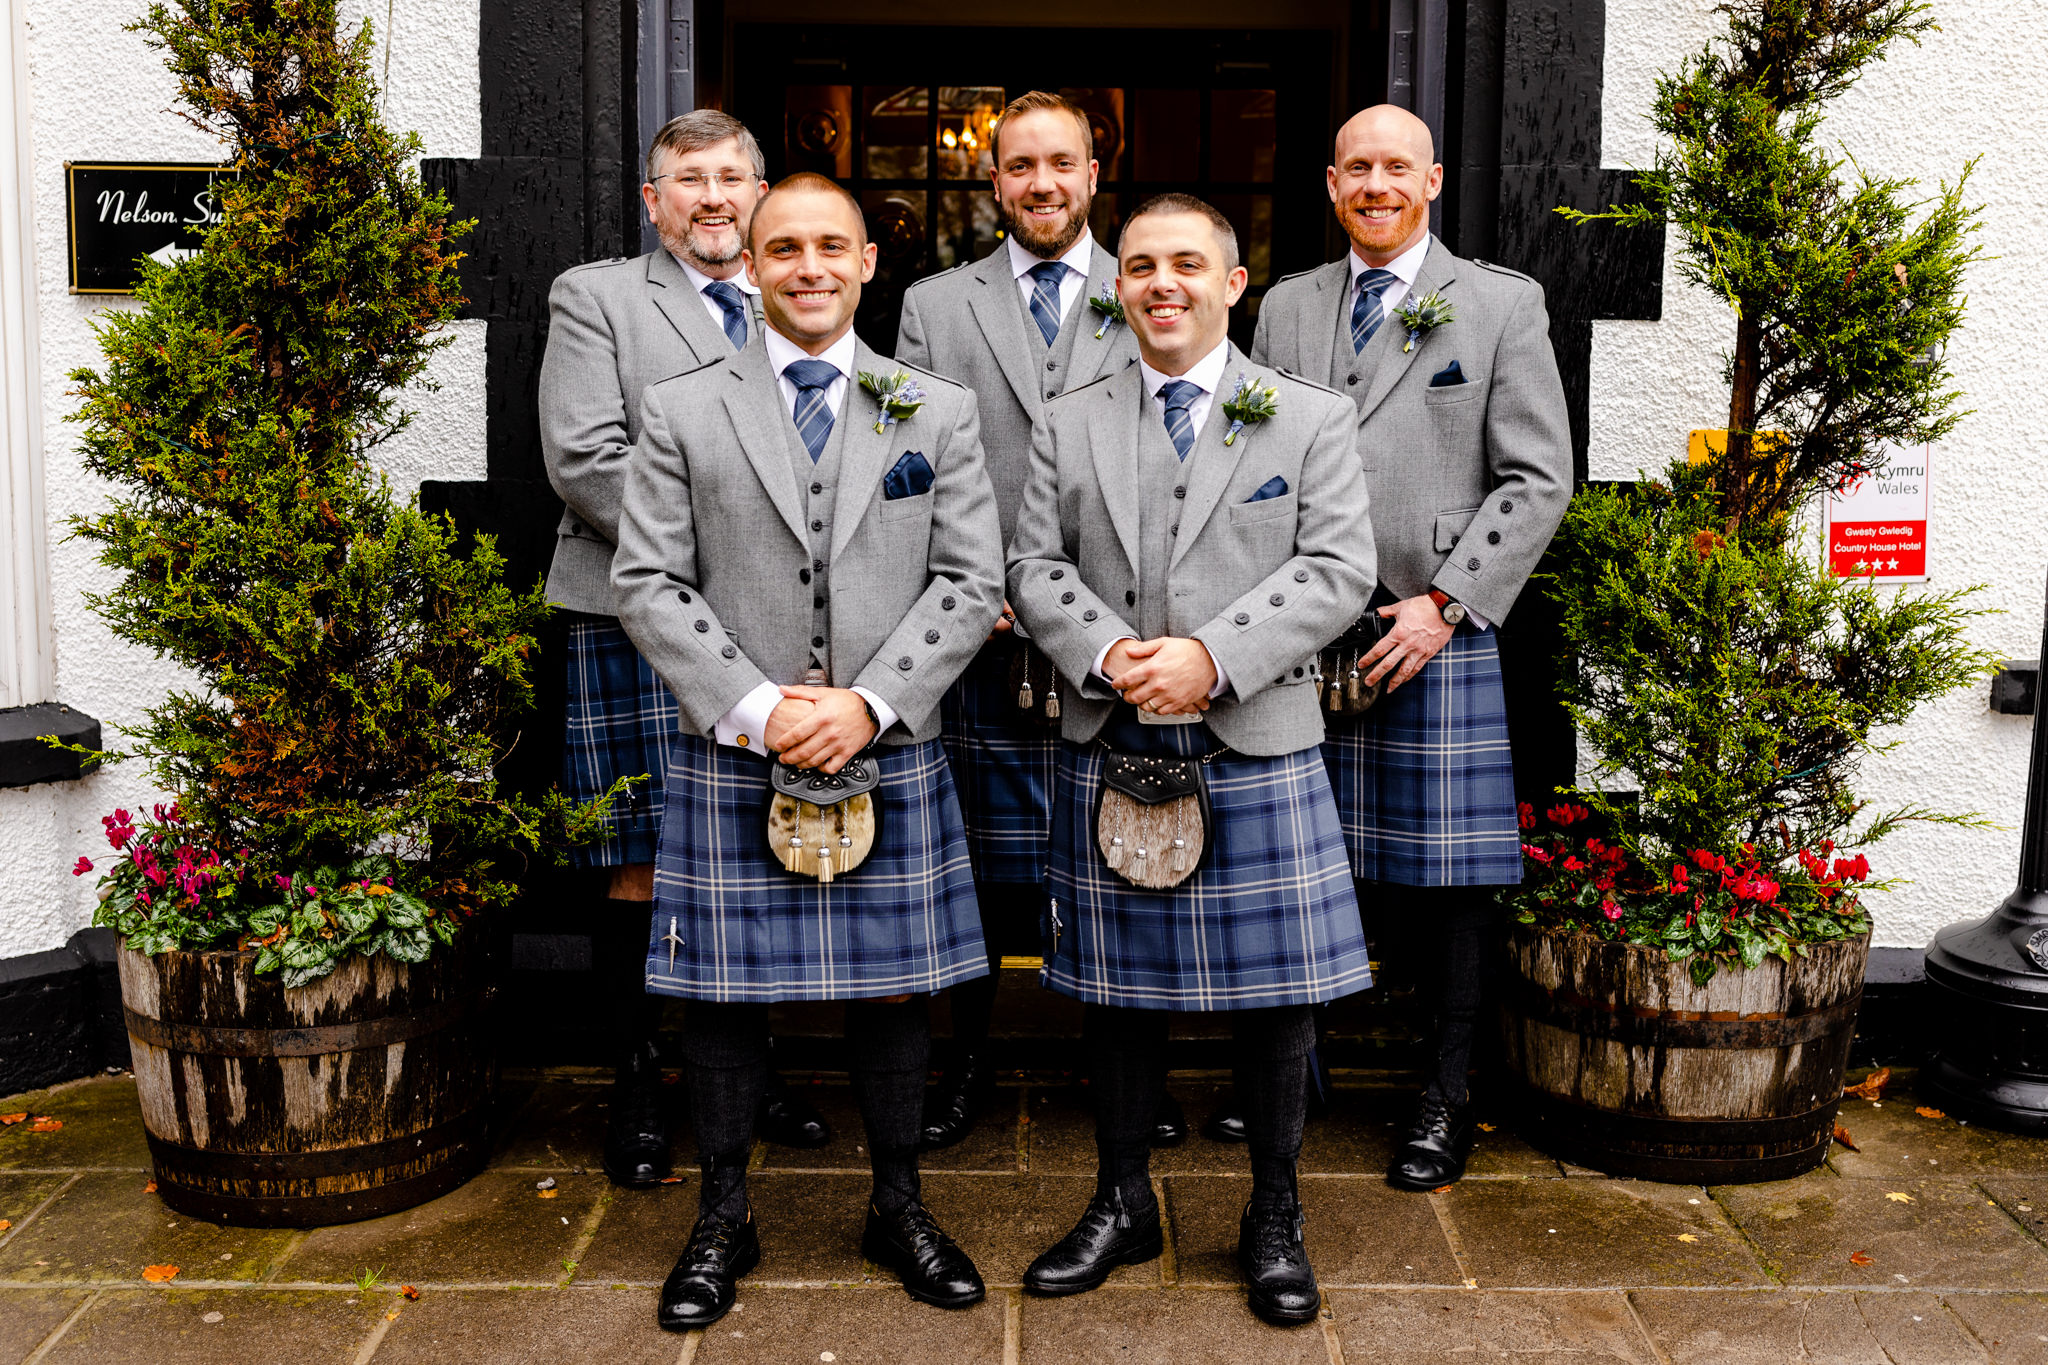 Llechwen Hall Wedding - Groomsmen